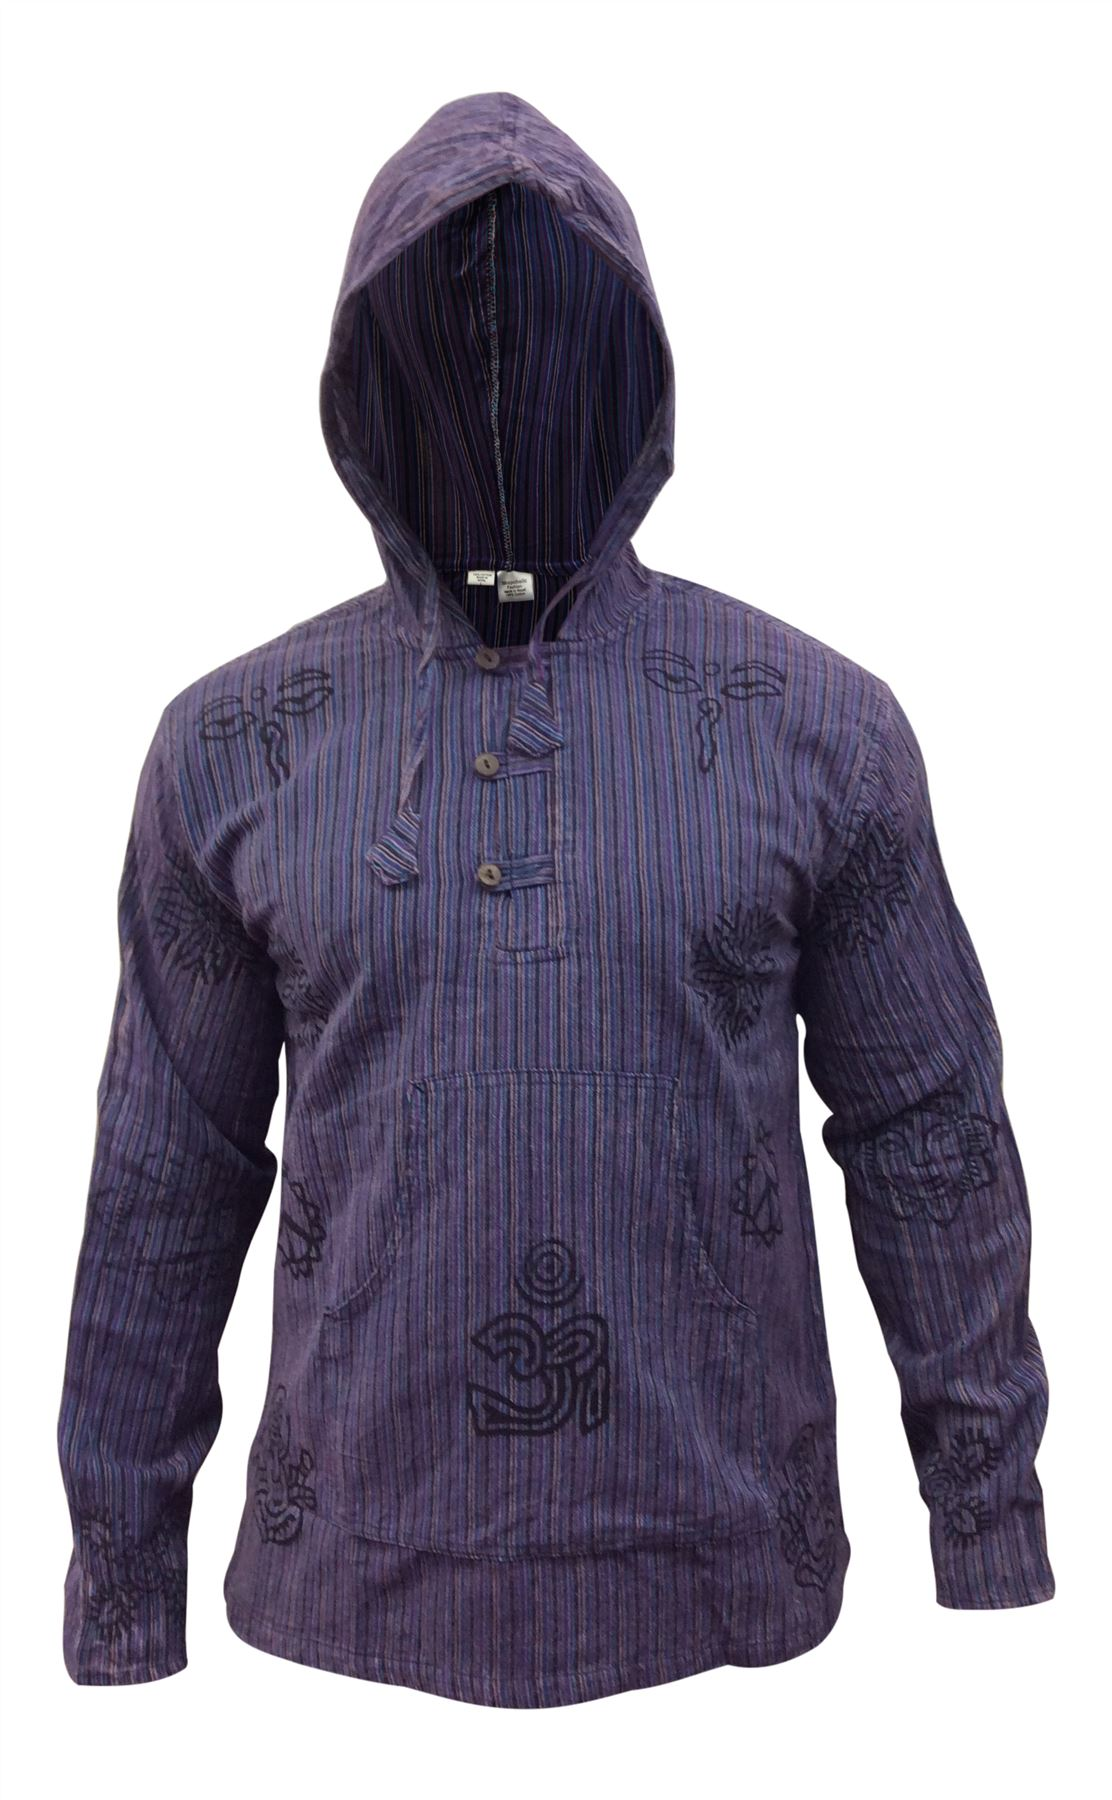 Mens-Stonewashed-Striped-Hooded-Grandad-Shirt-Long-Sleeve-Casual-Hooded-Top thumbnail 24